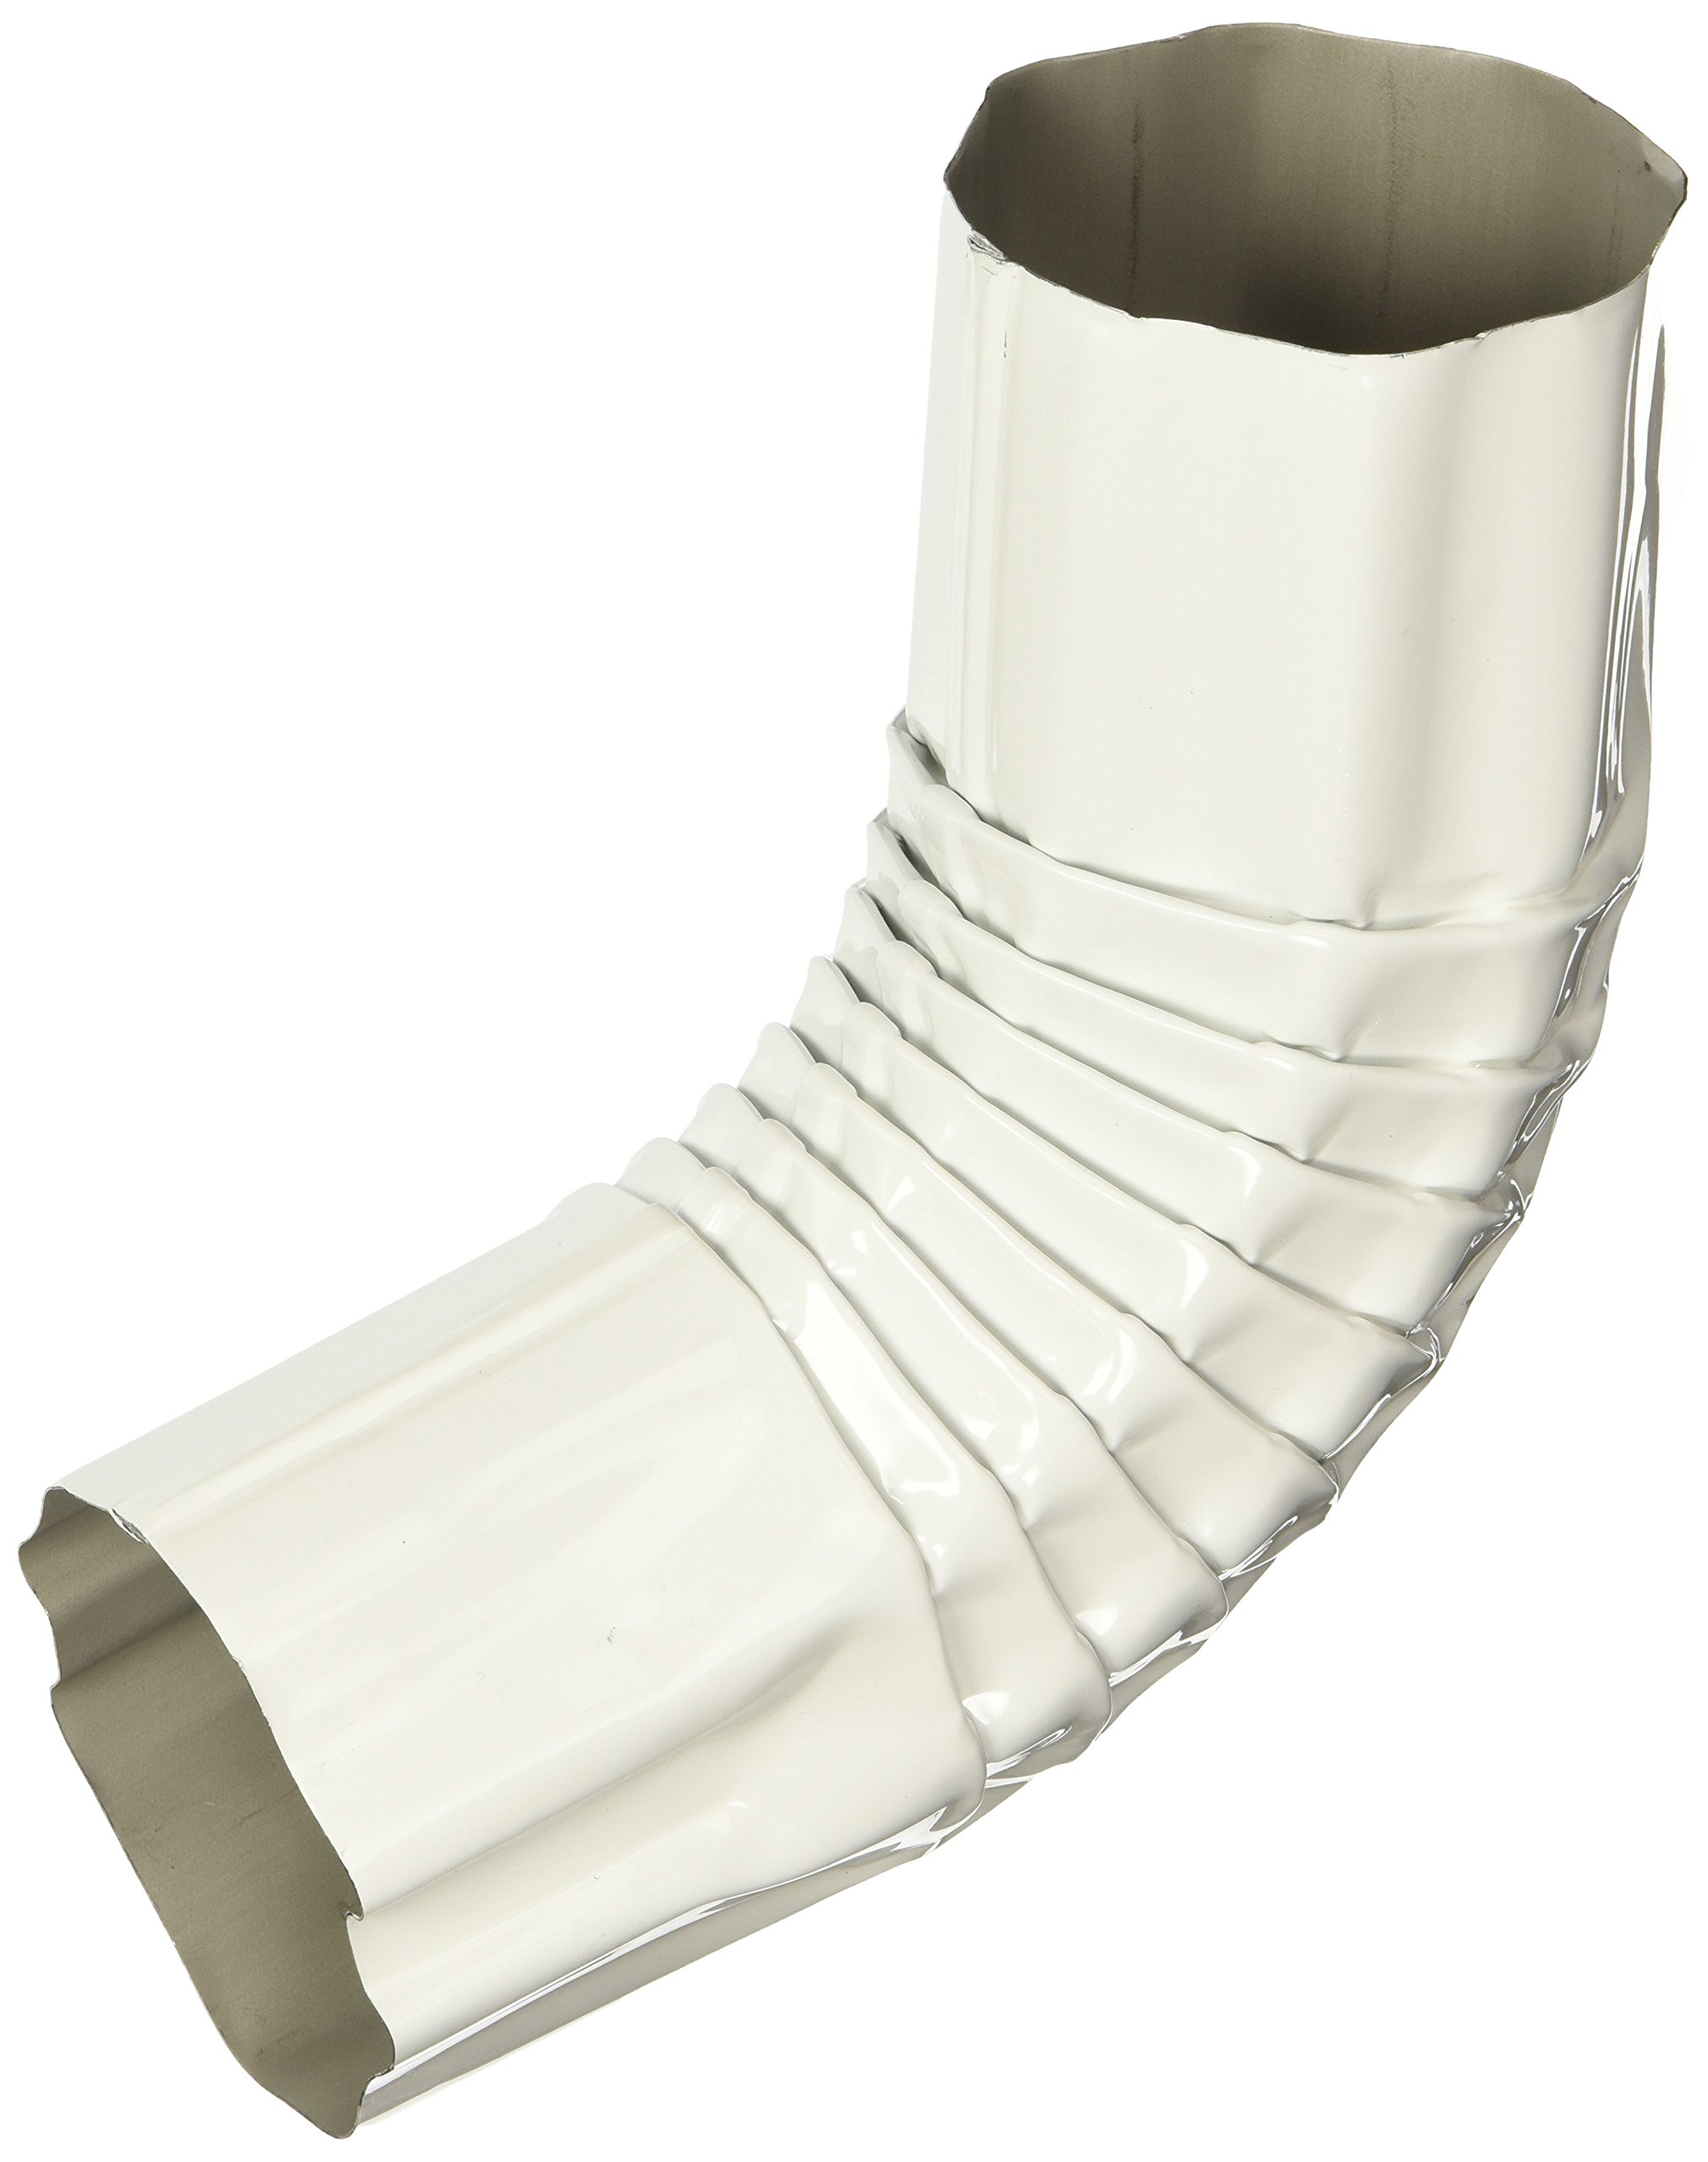 AMERIMAX HOME PRODUCTS 473741 3-Inch Round Aluminum Elbow, White